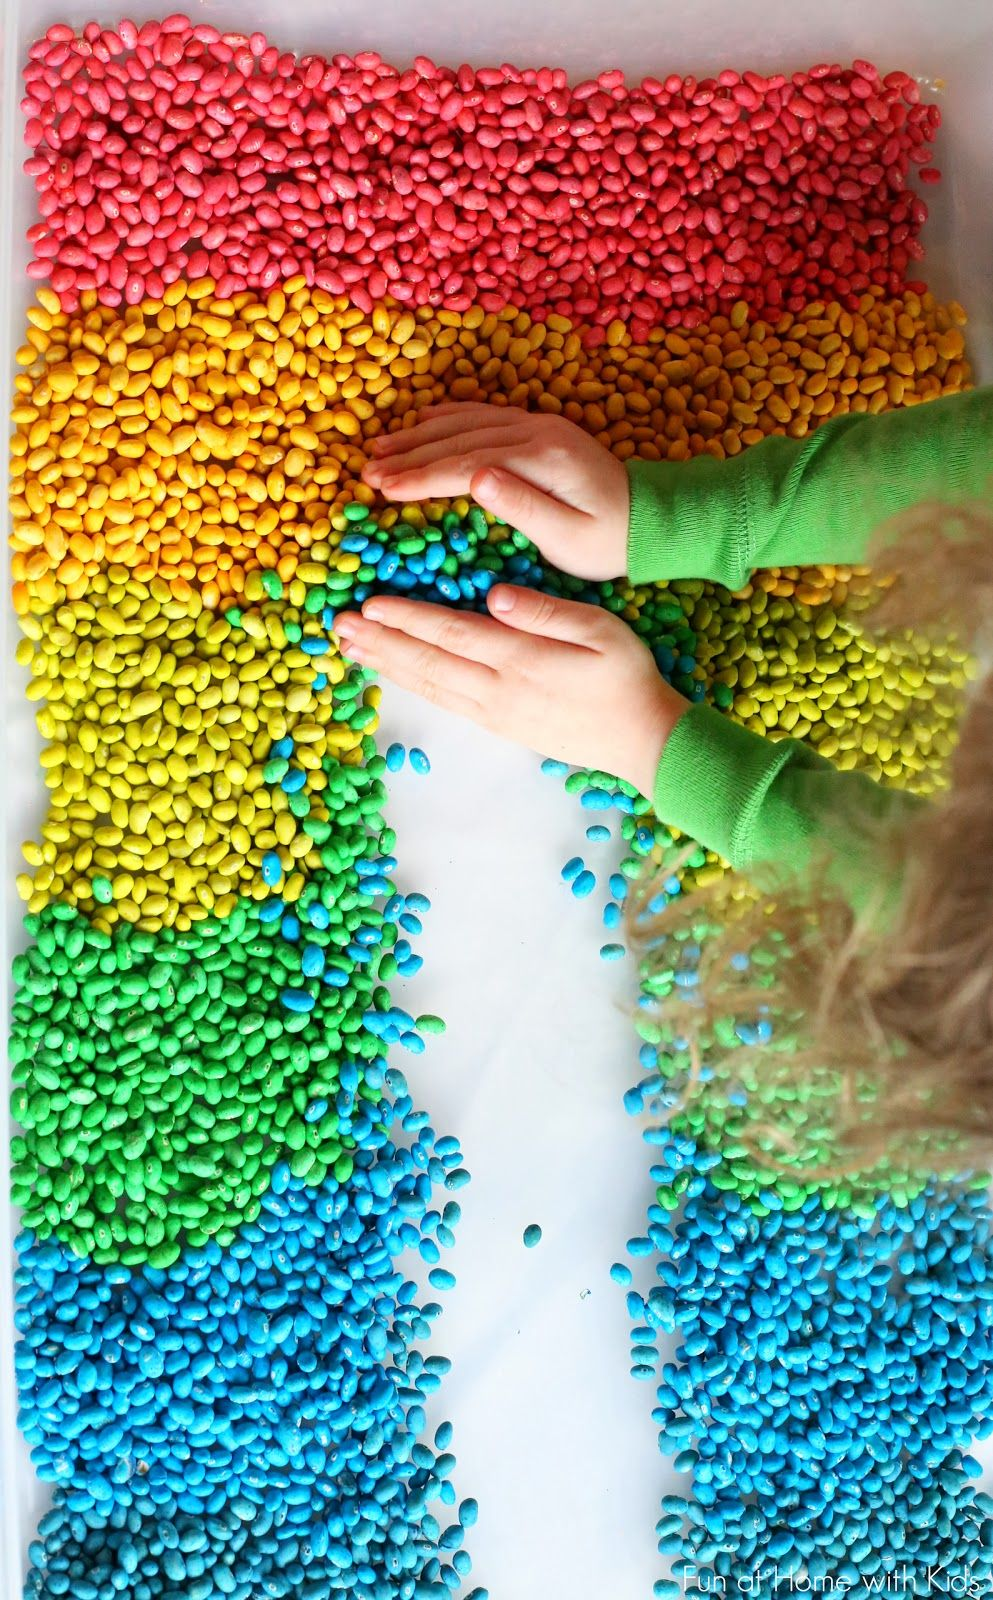 How to Color Beans for Play and Art | Navy bean, Beans and Lima